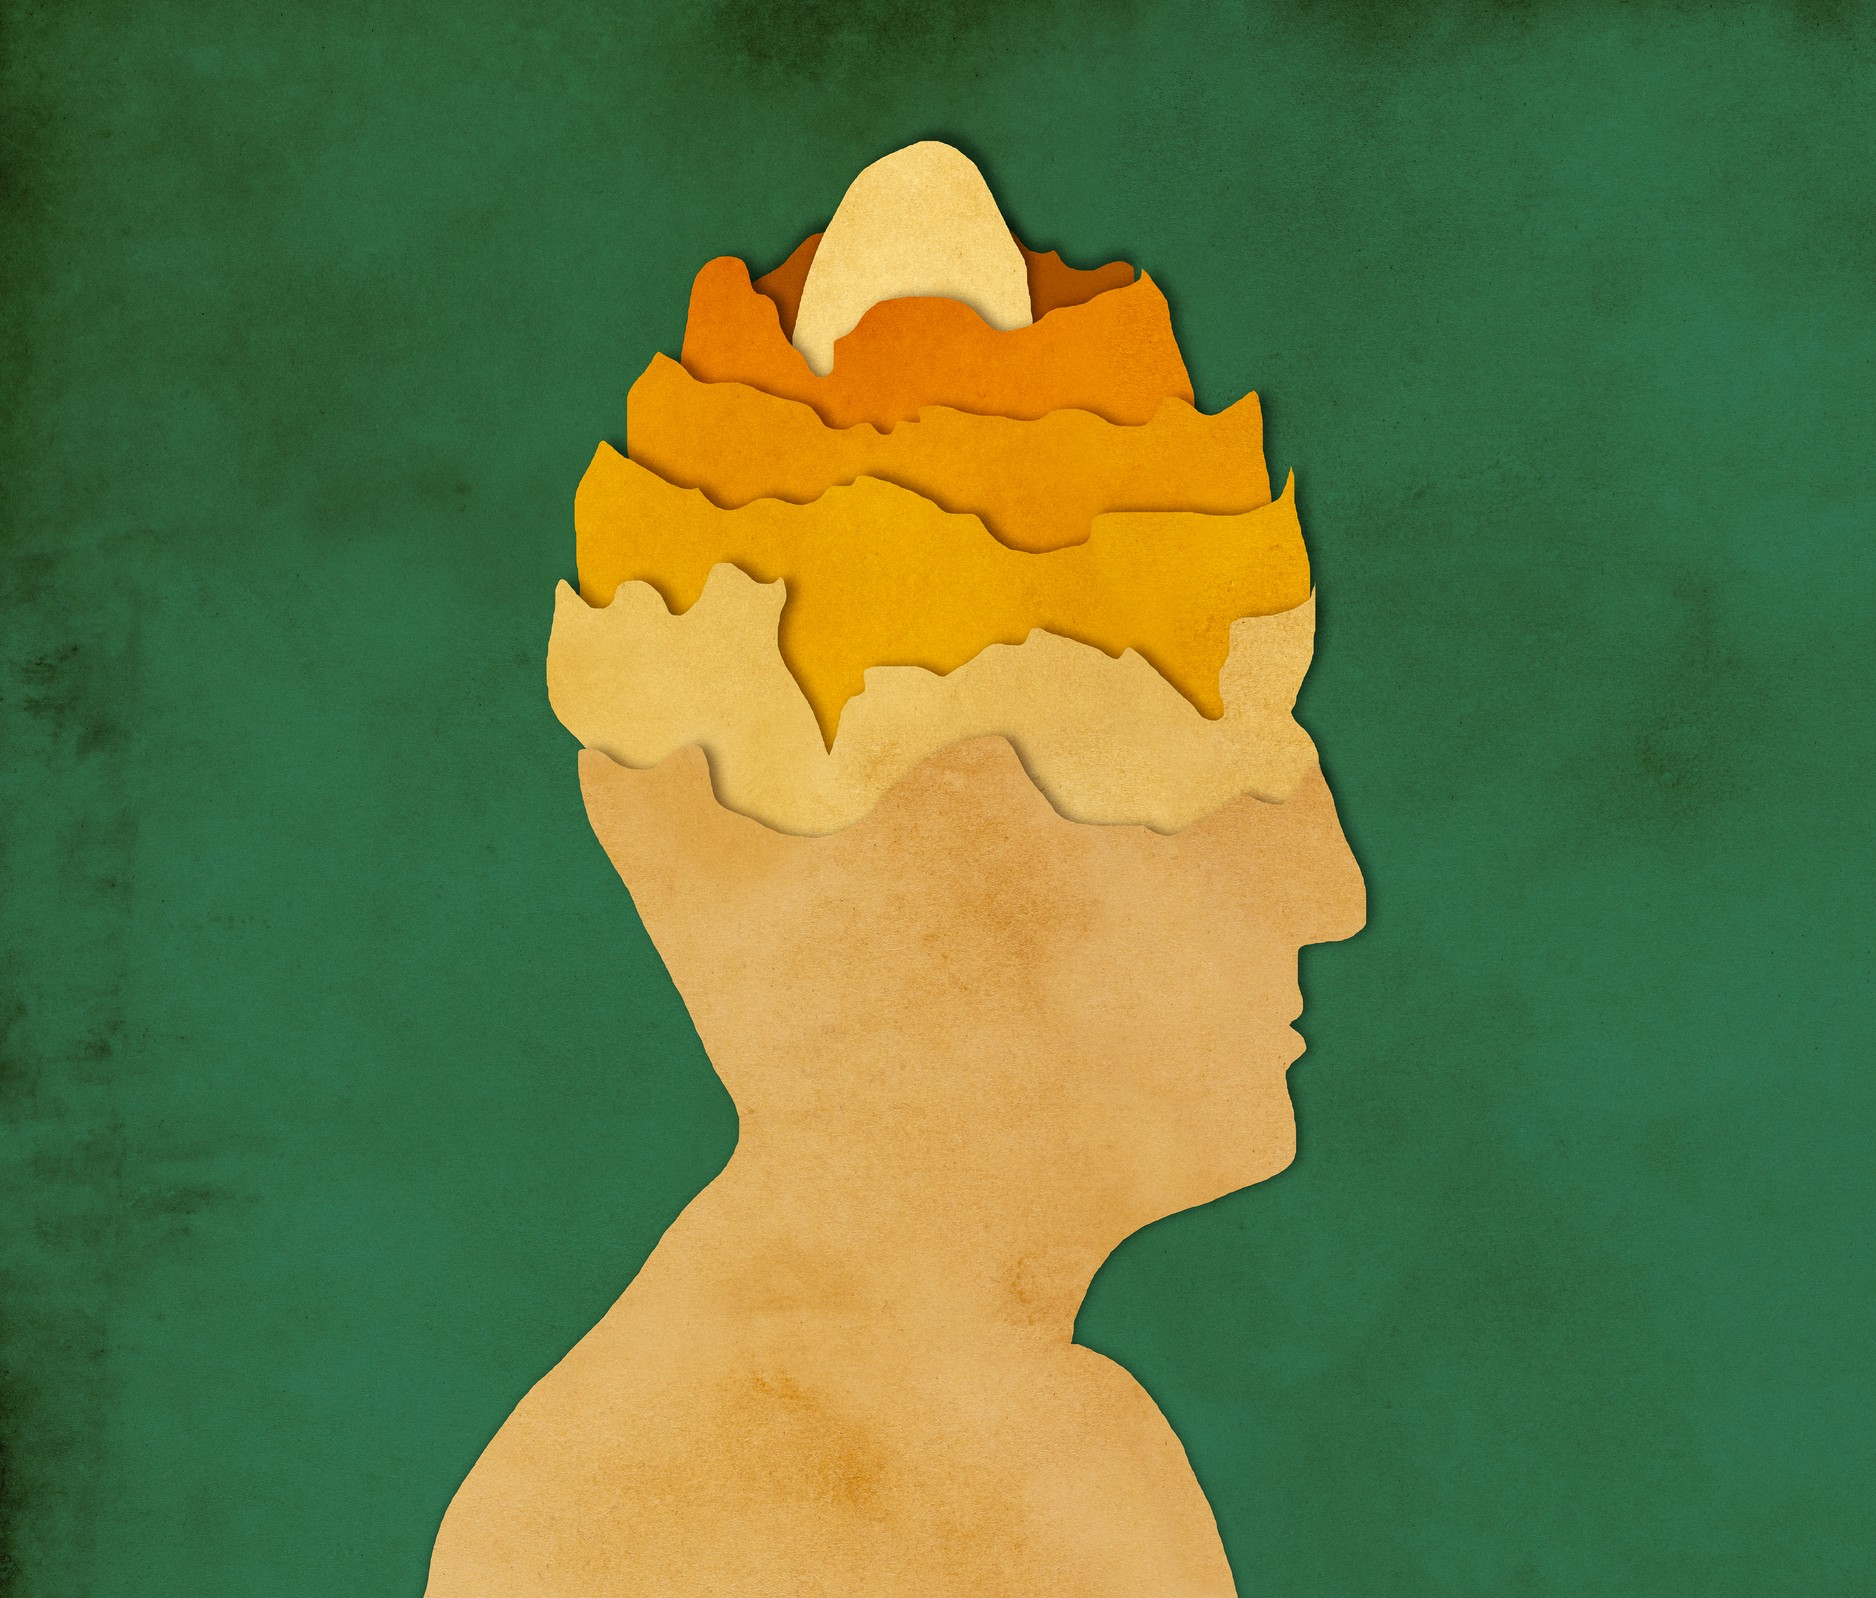 Paper-cut image of layers of a man's head, with egg at the core.